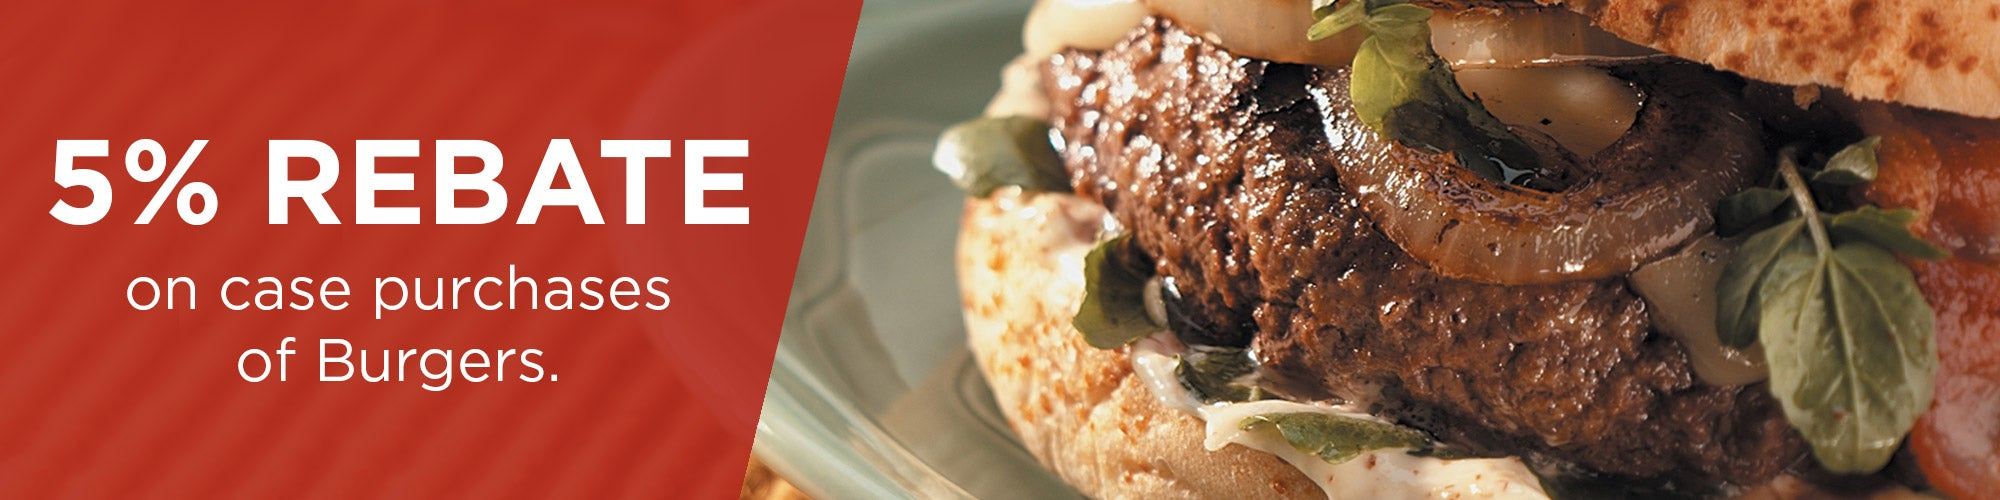 5% Rebate on case purchases of burgers.